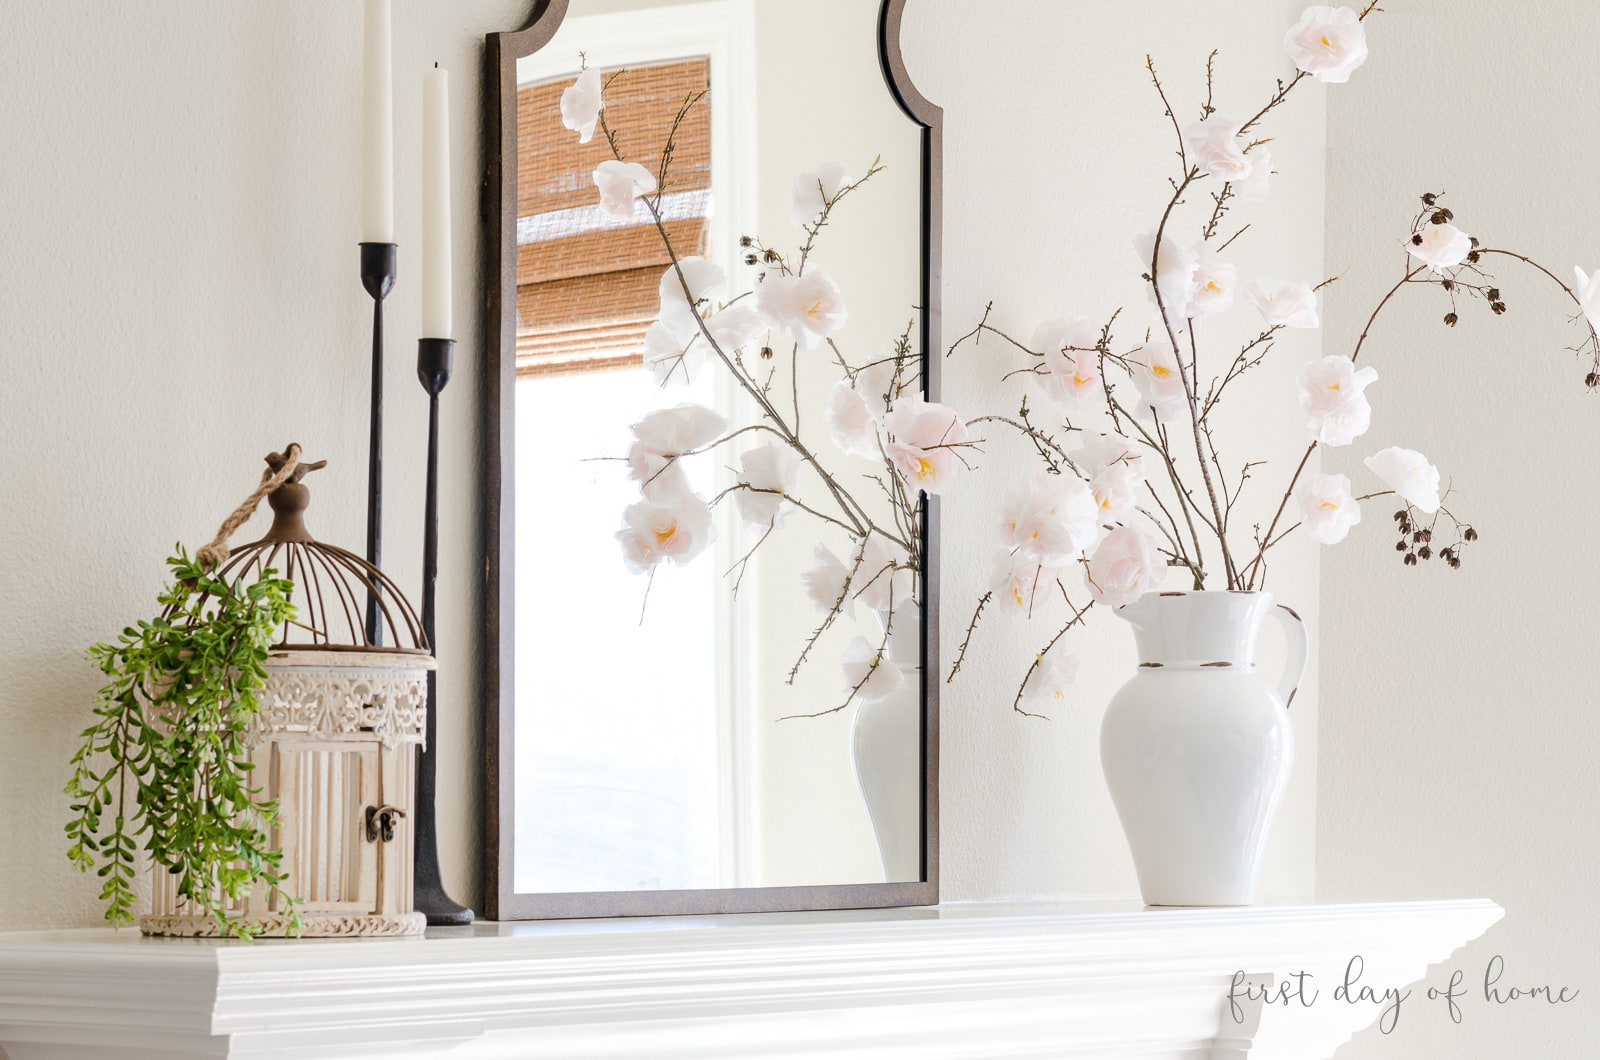 Spring mantel with bird case, greenery, black taper candleholders, Moroccan mirror and faux cherry blossom stems in a white pitcher